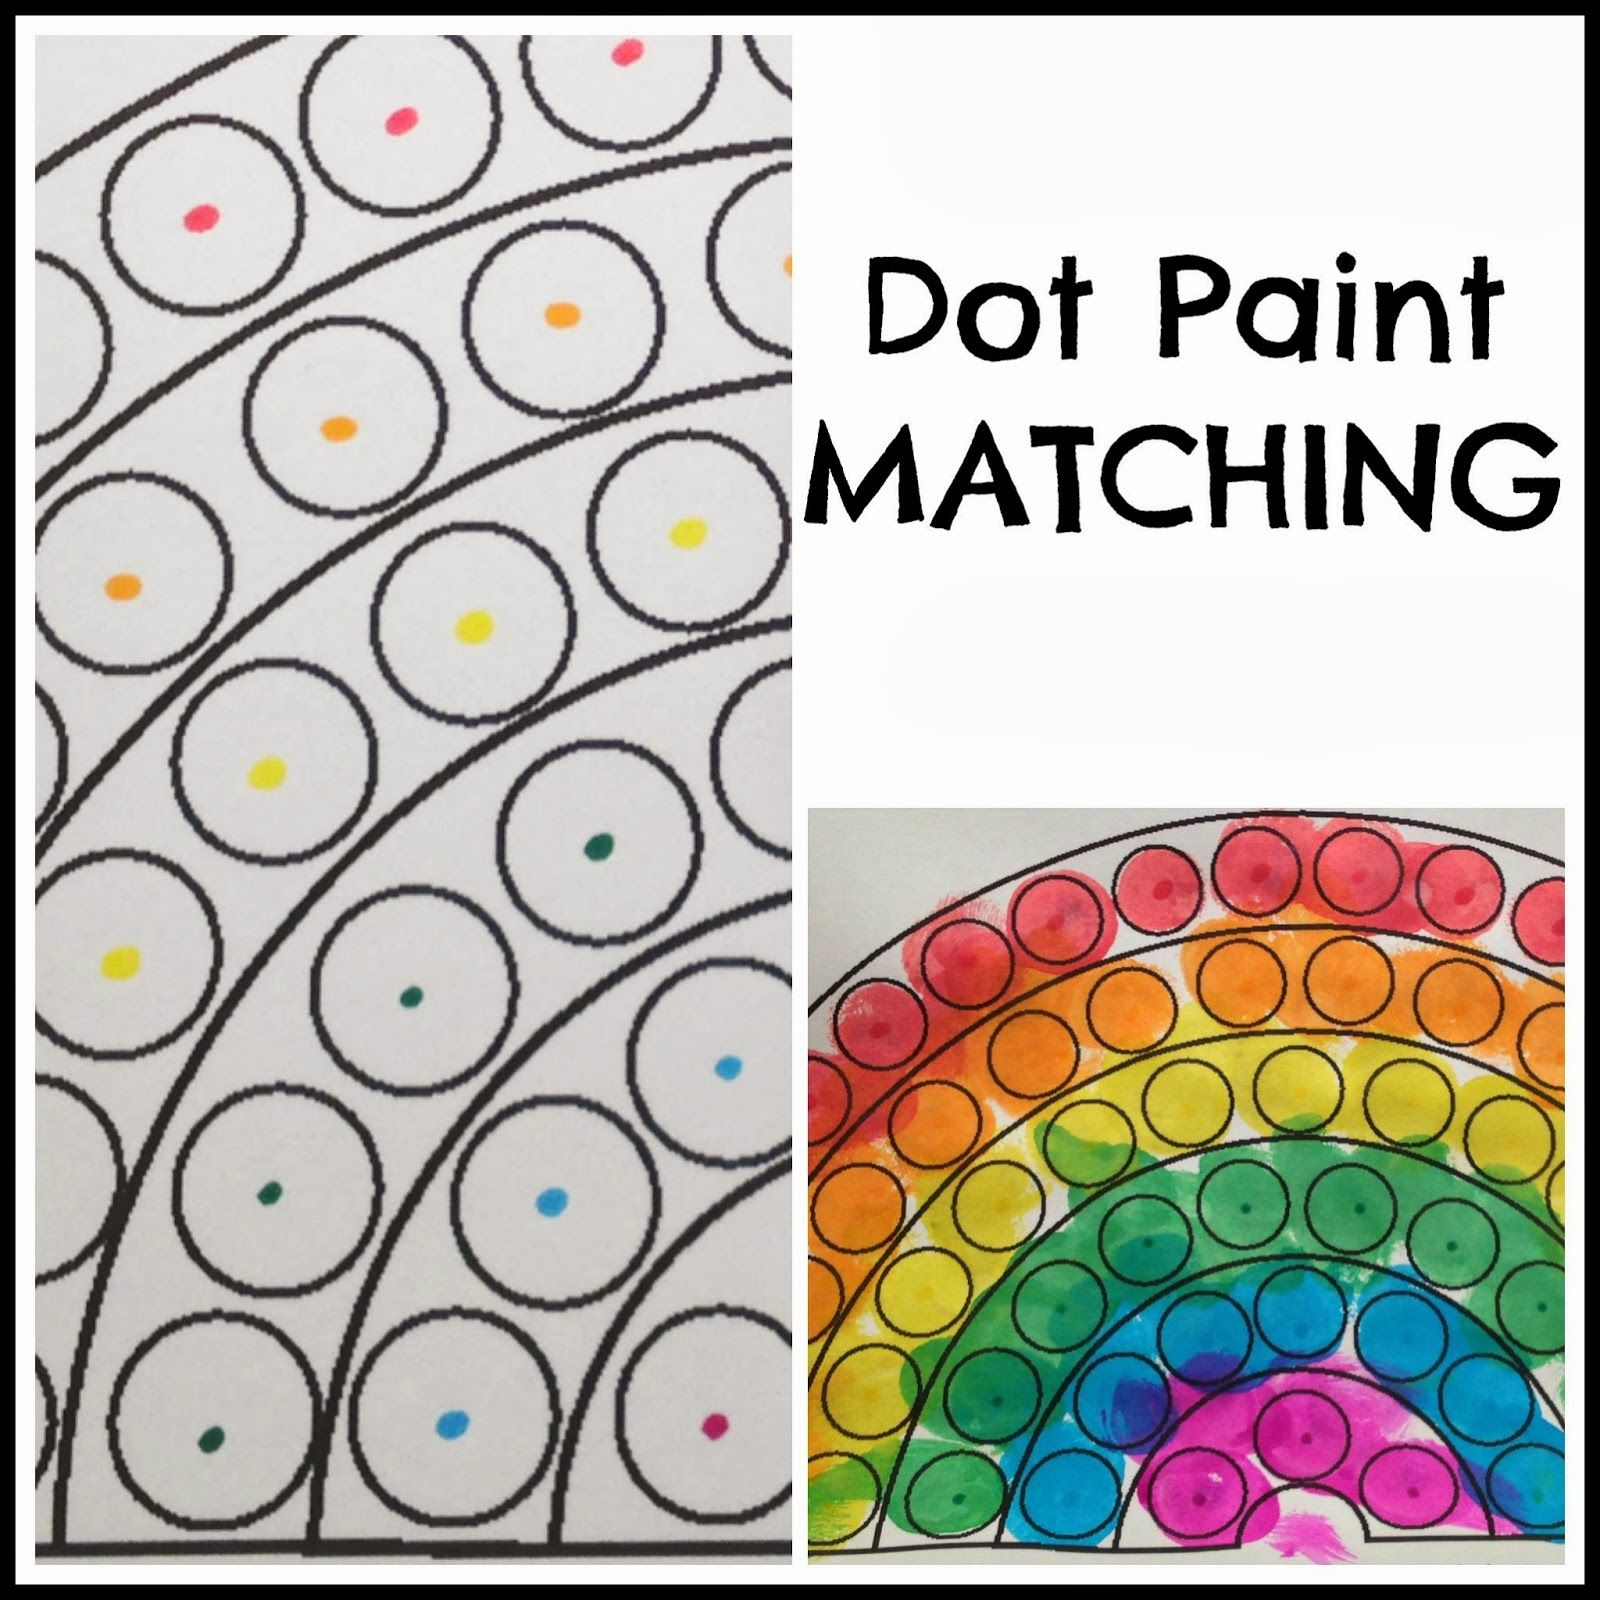 Dot Paint Matching